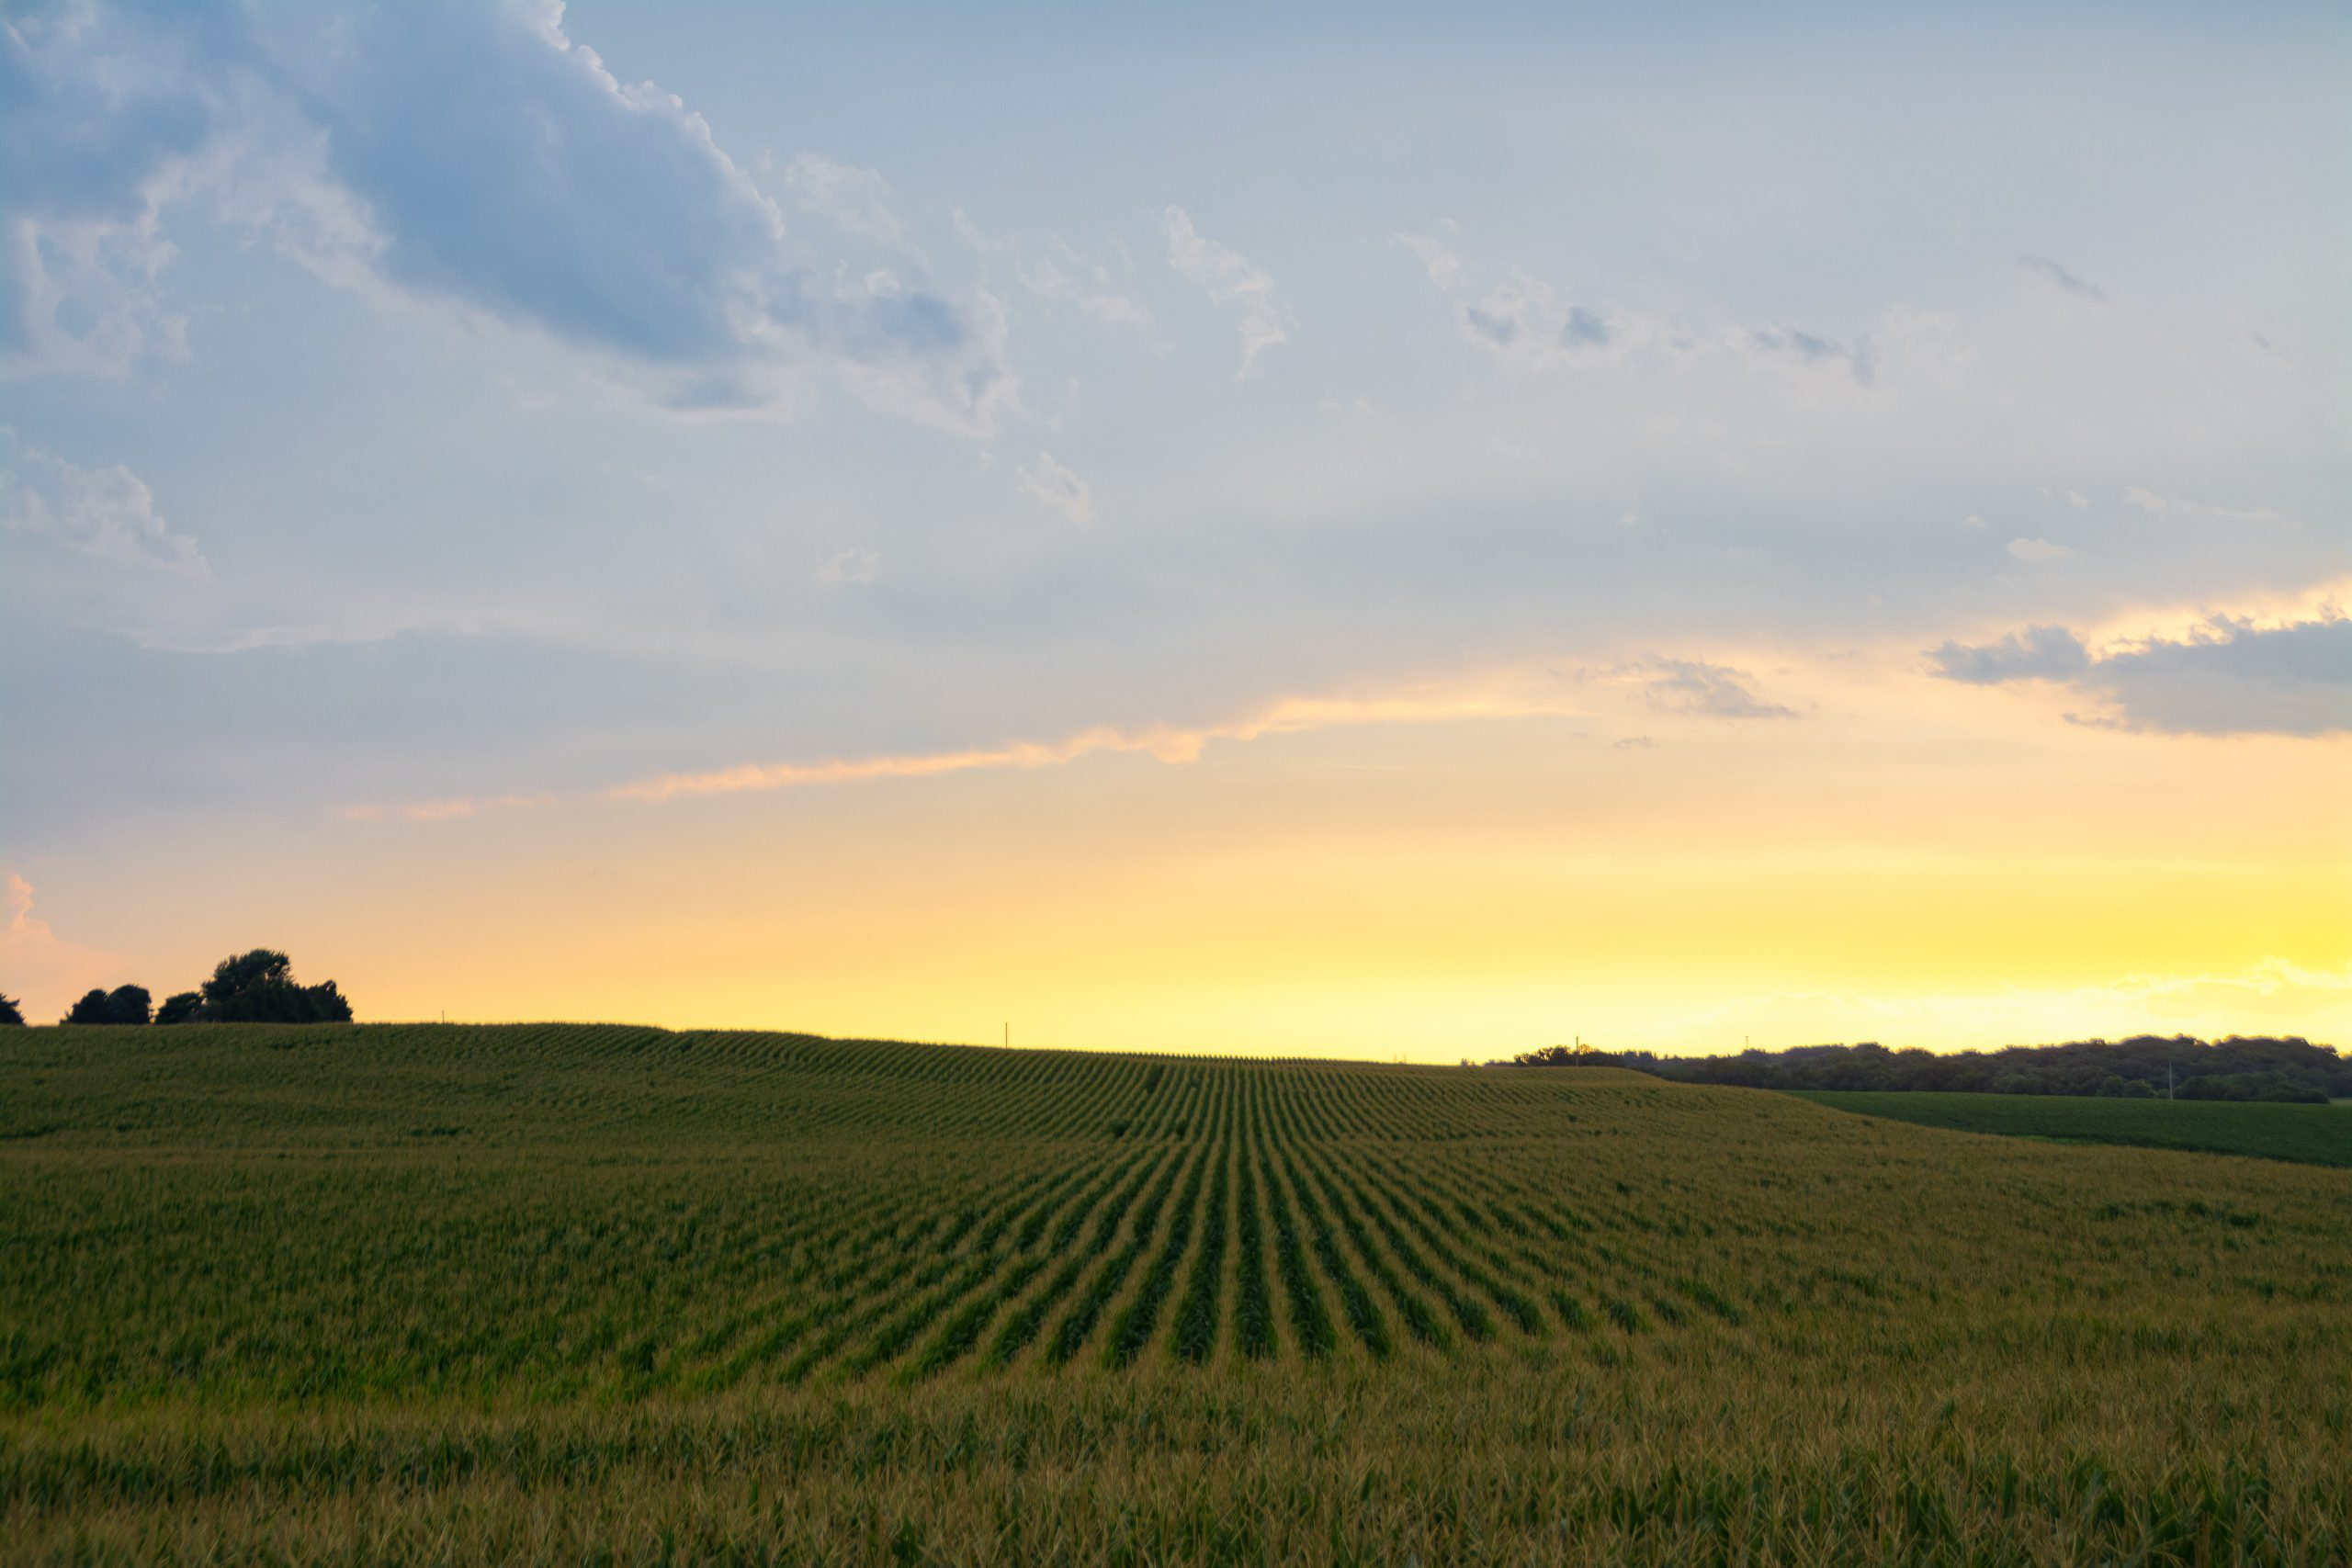 Afternoon light after a Summer rain over cornfield. Bureau County, Illinois, USA